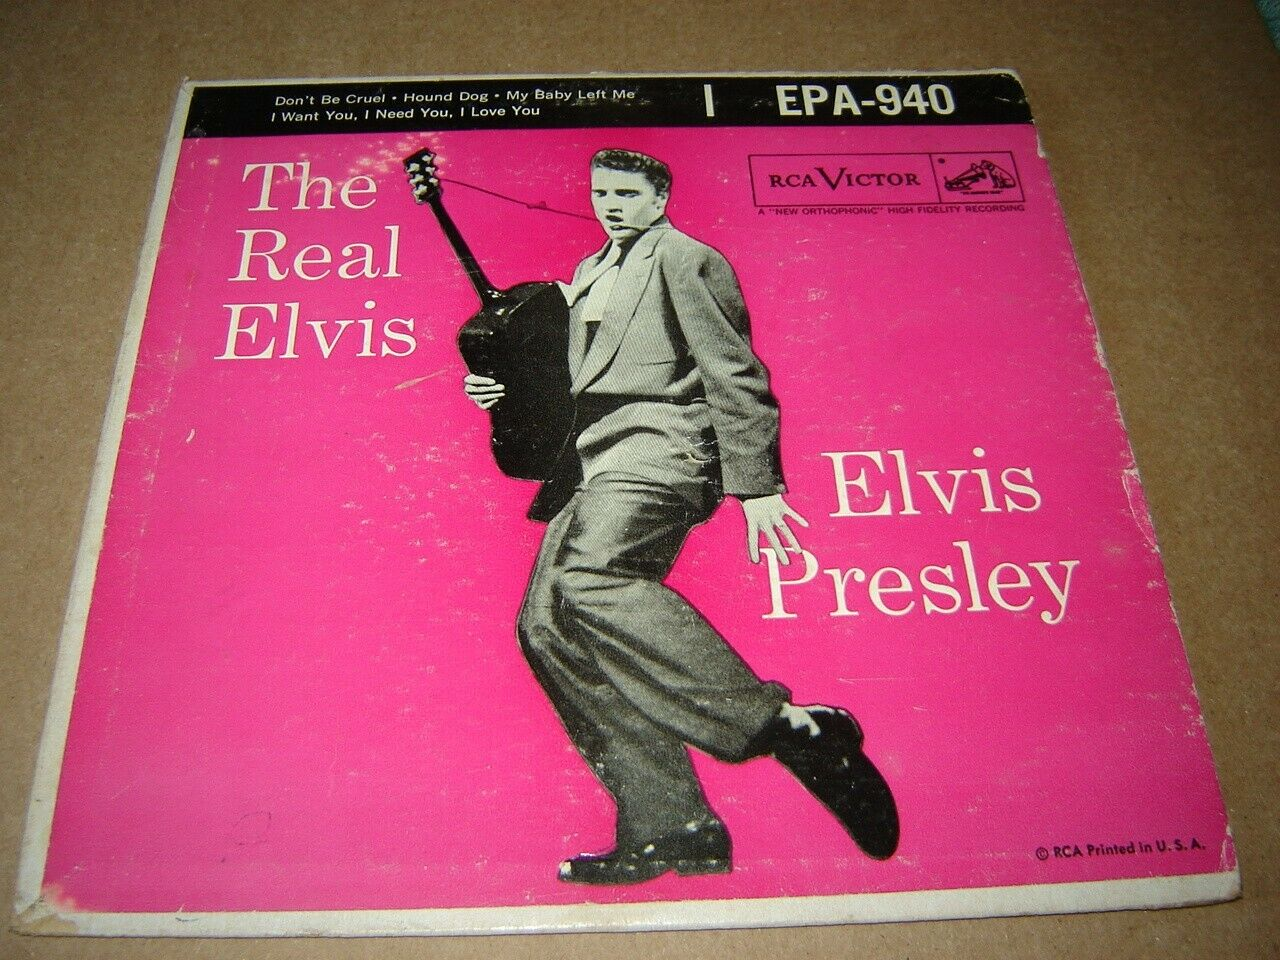 Elvis Presley - The Real Elvis hard PS EPA-940 with Hound Dog 45 8S wrong record